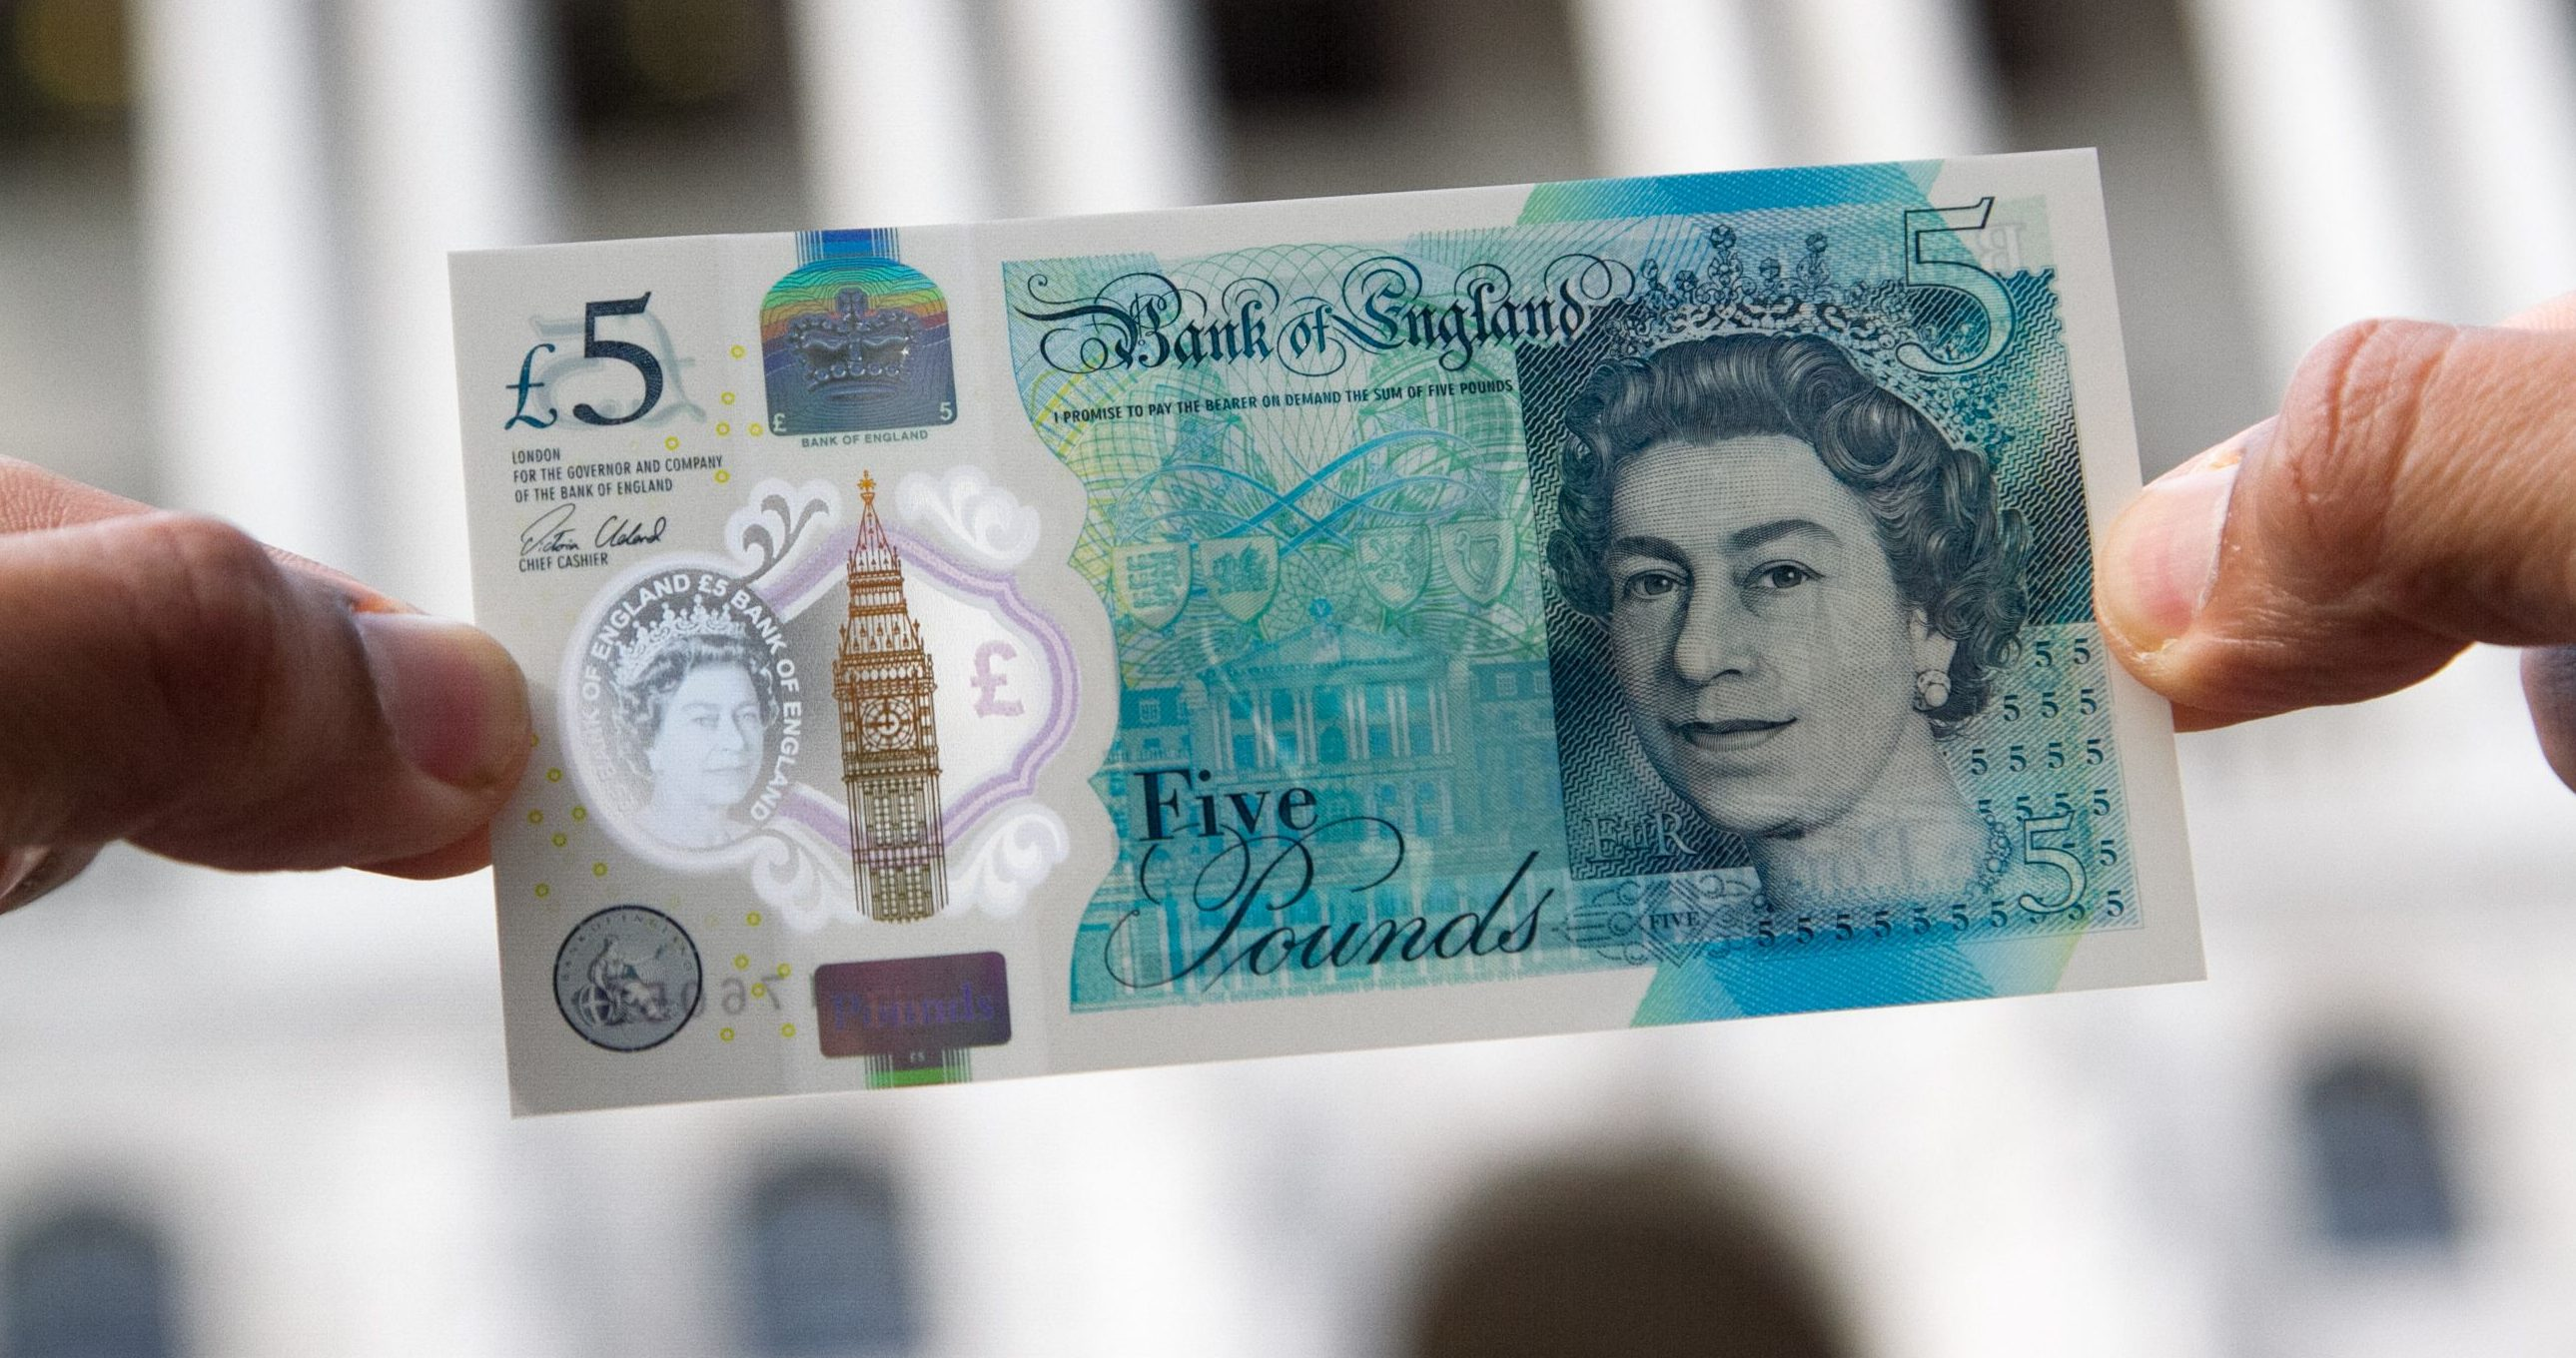 Why shops are refusing to accept the new five pound notes